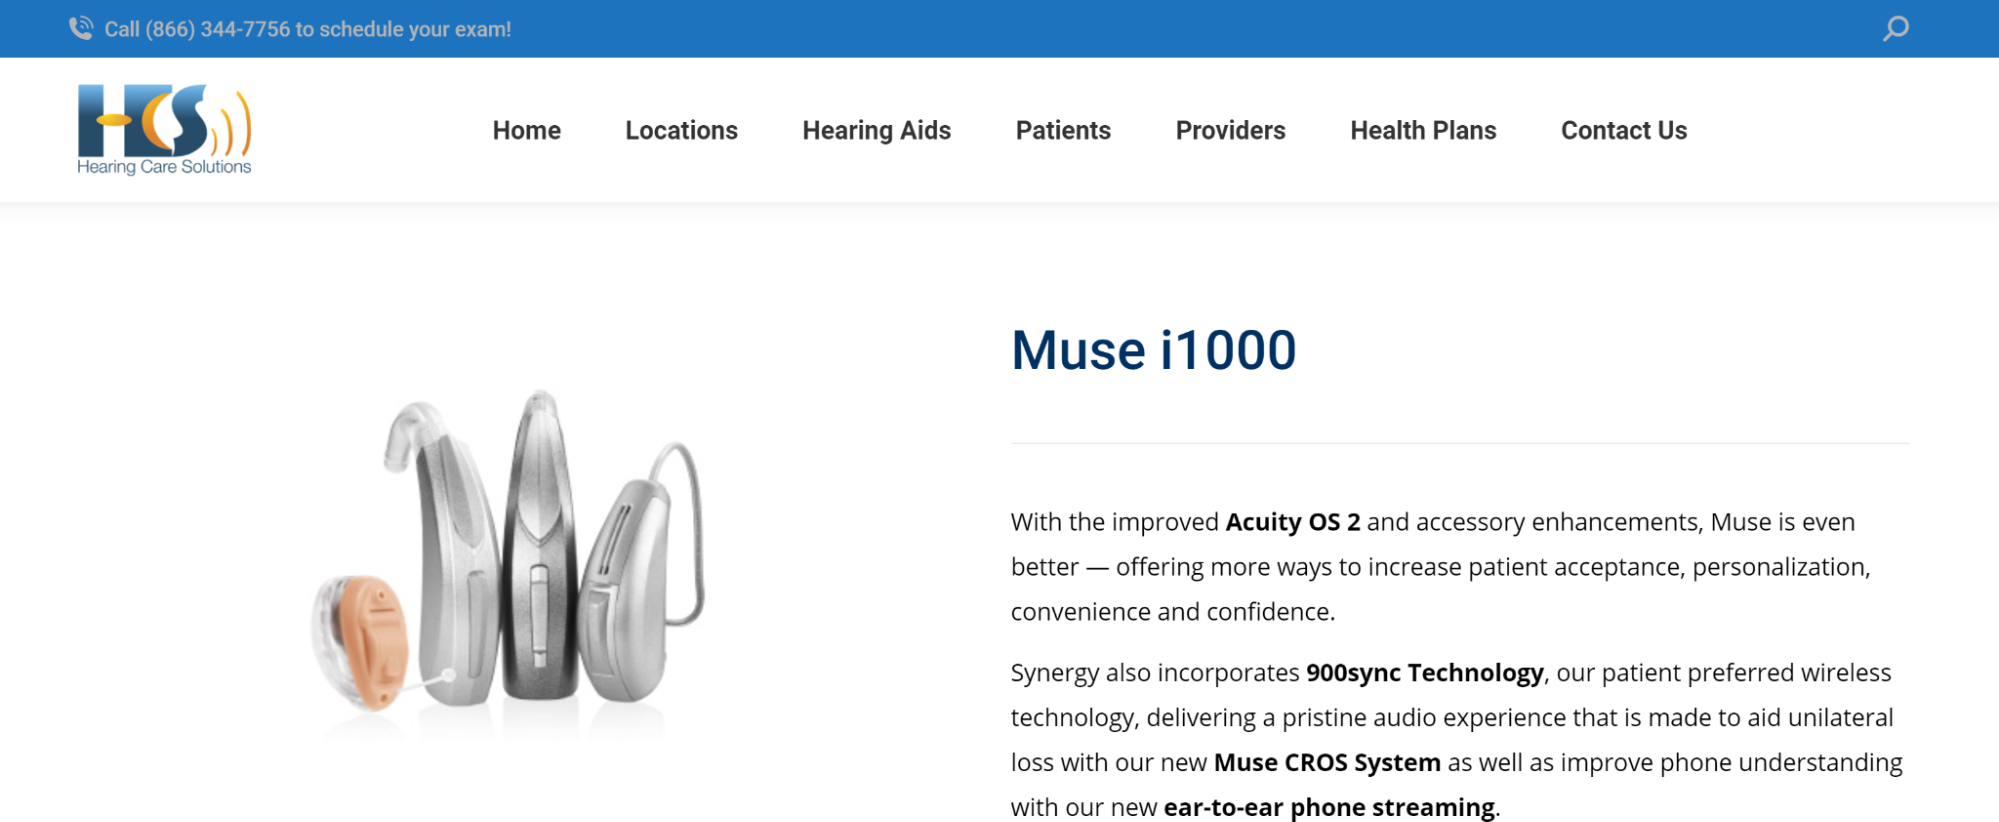 Hearing Care Solutions: Muse i100 product description